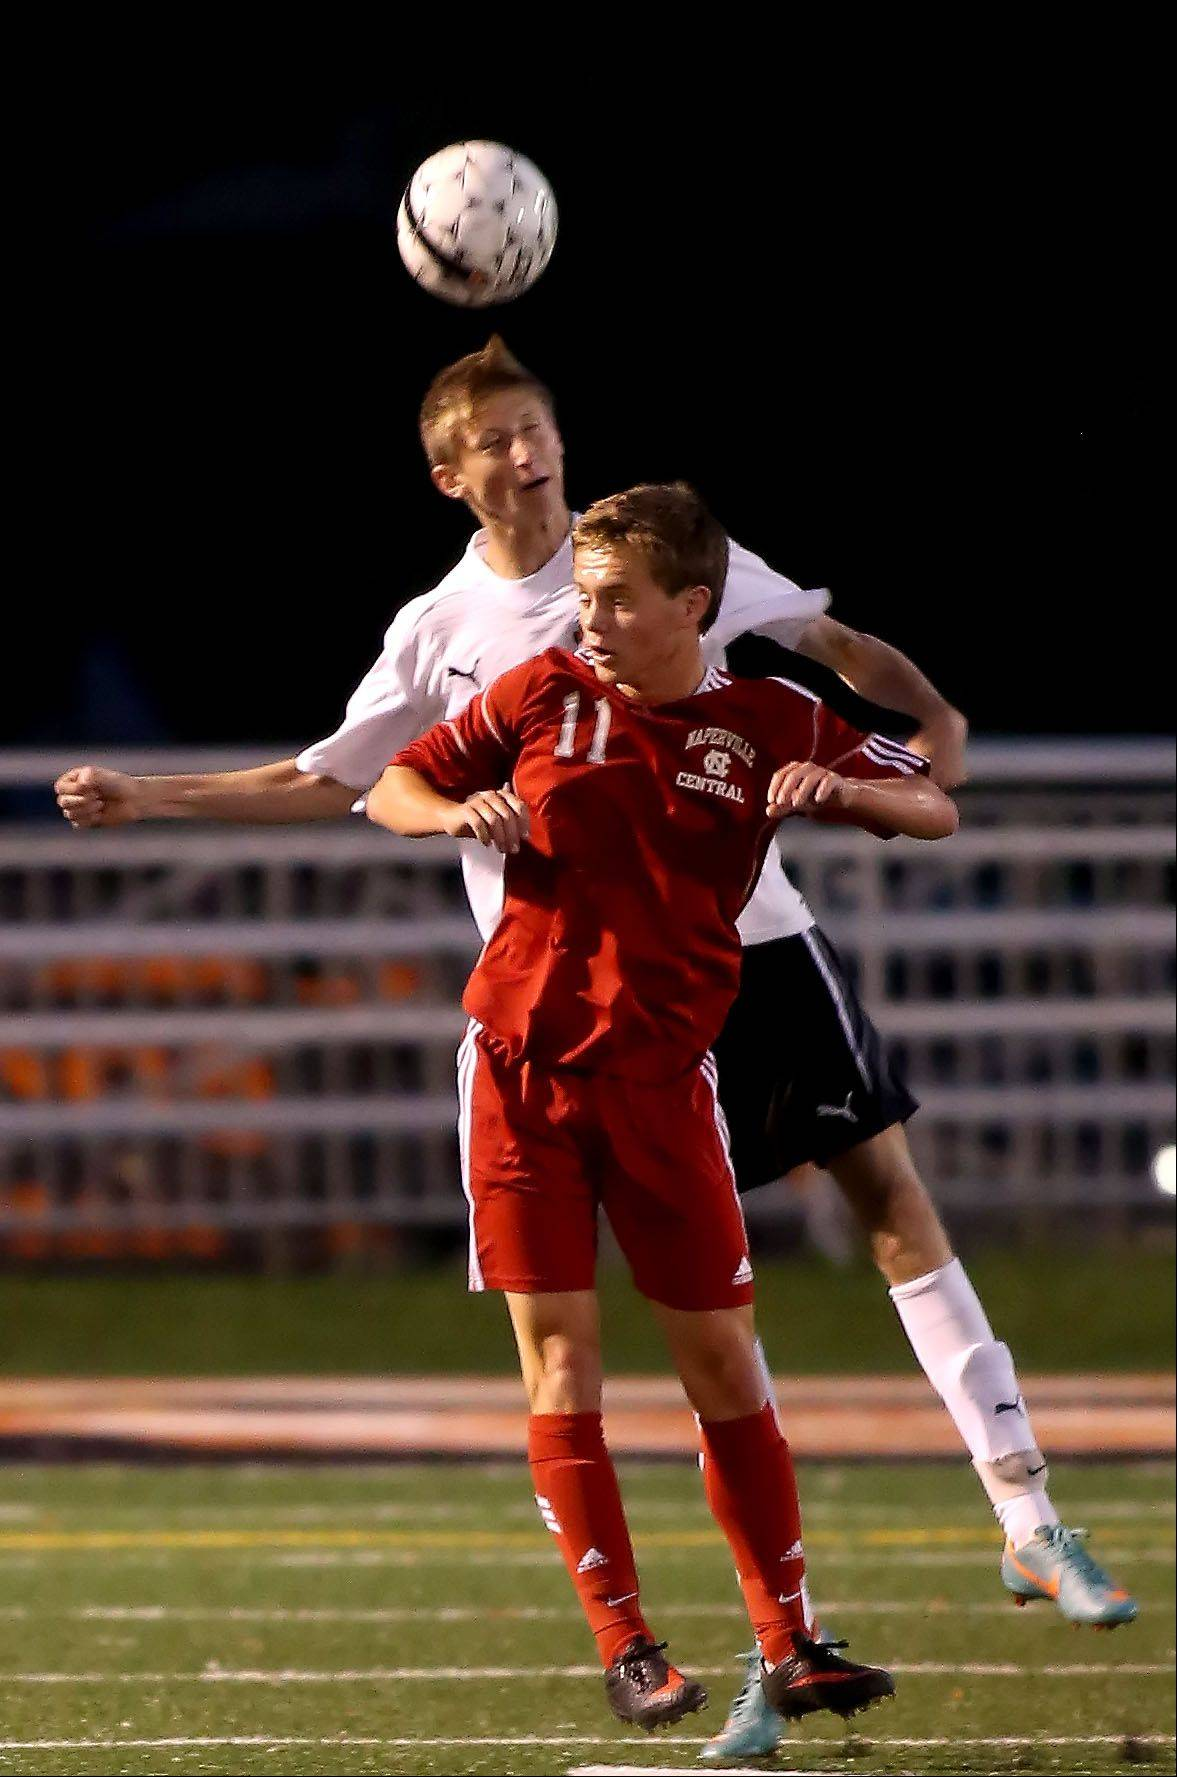 Ian Daniel of Wheaton Warrenville South, behind, heads the ball from Ben Border of Naperville Central during boys soccer action on Tuesday in Wheaton.